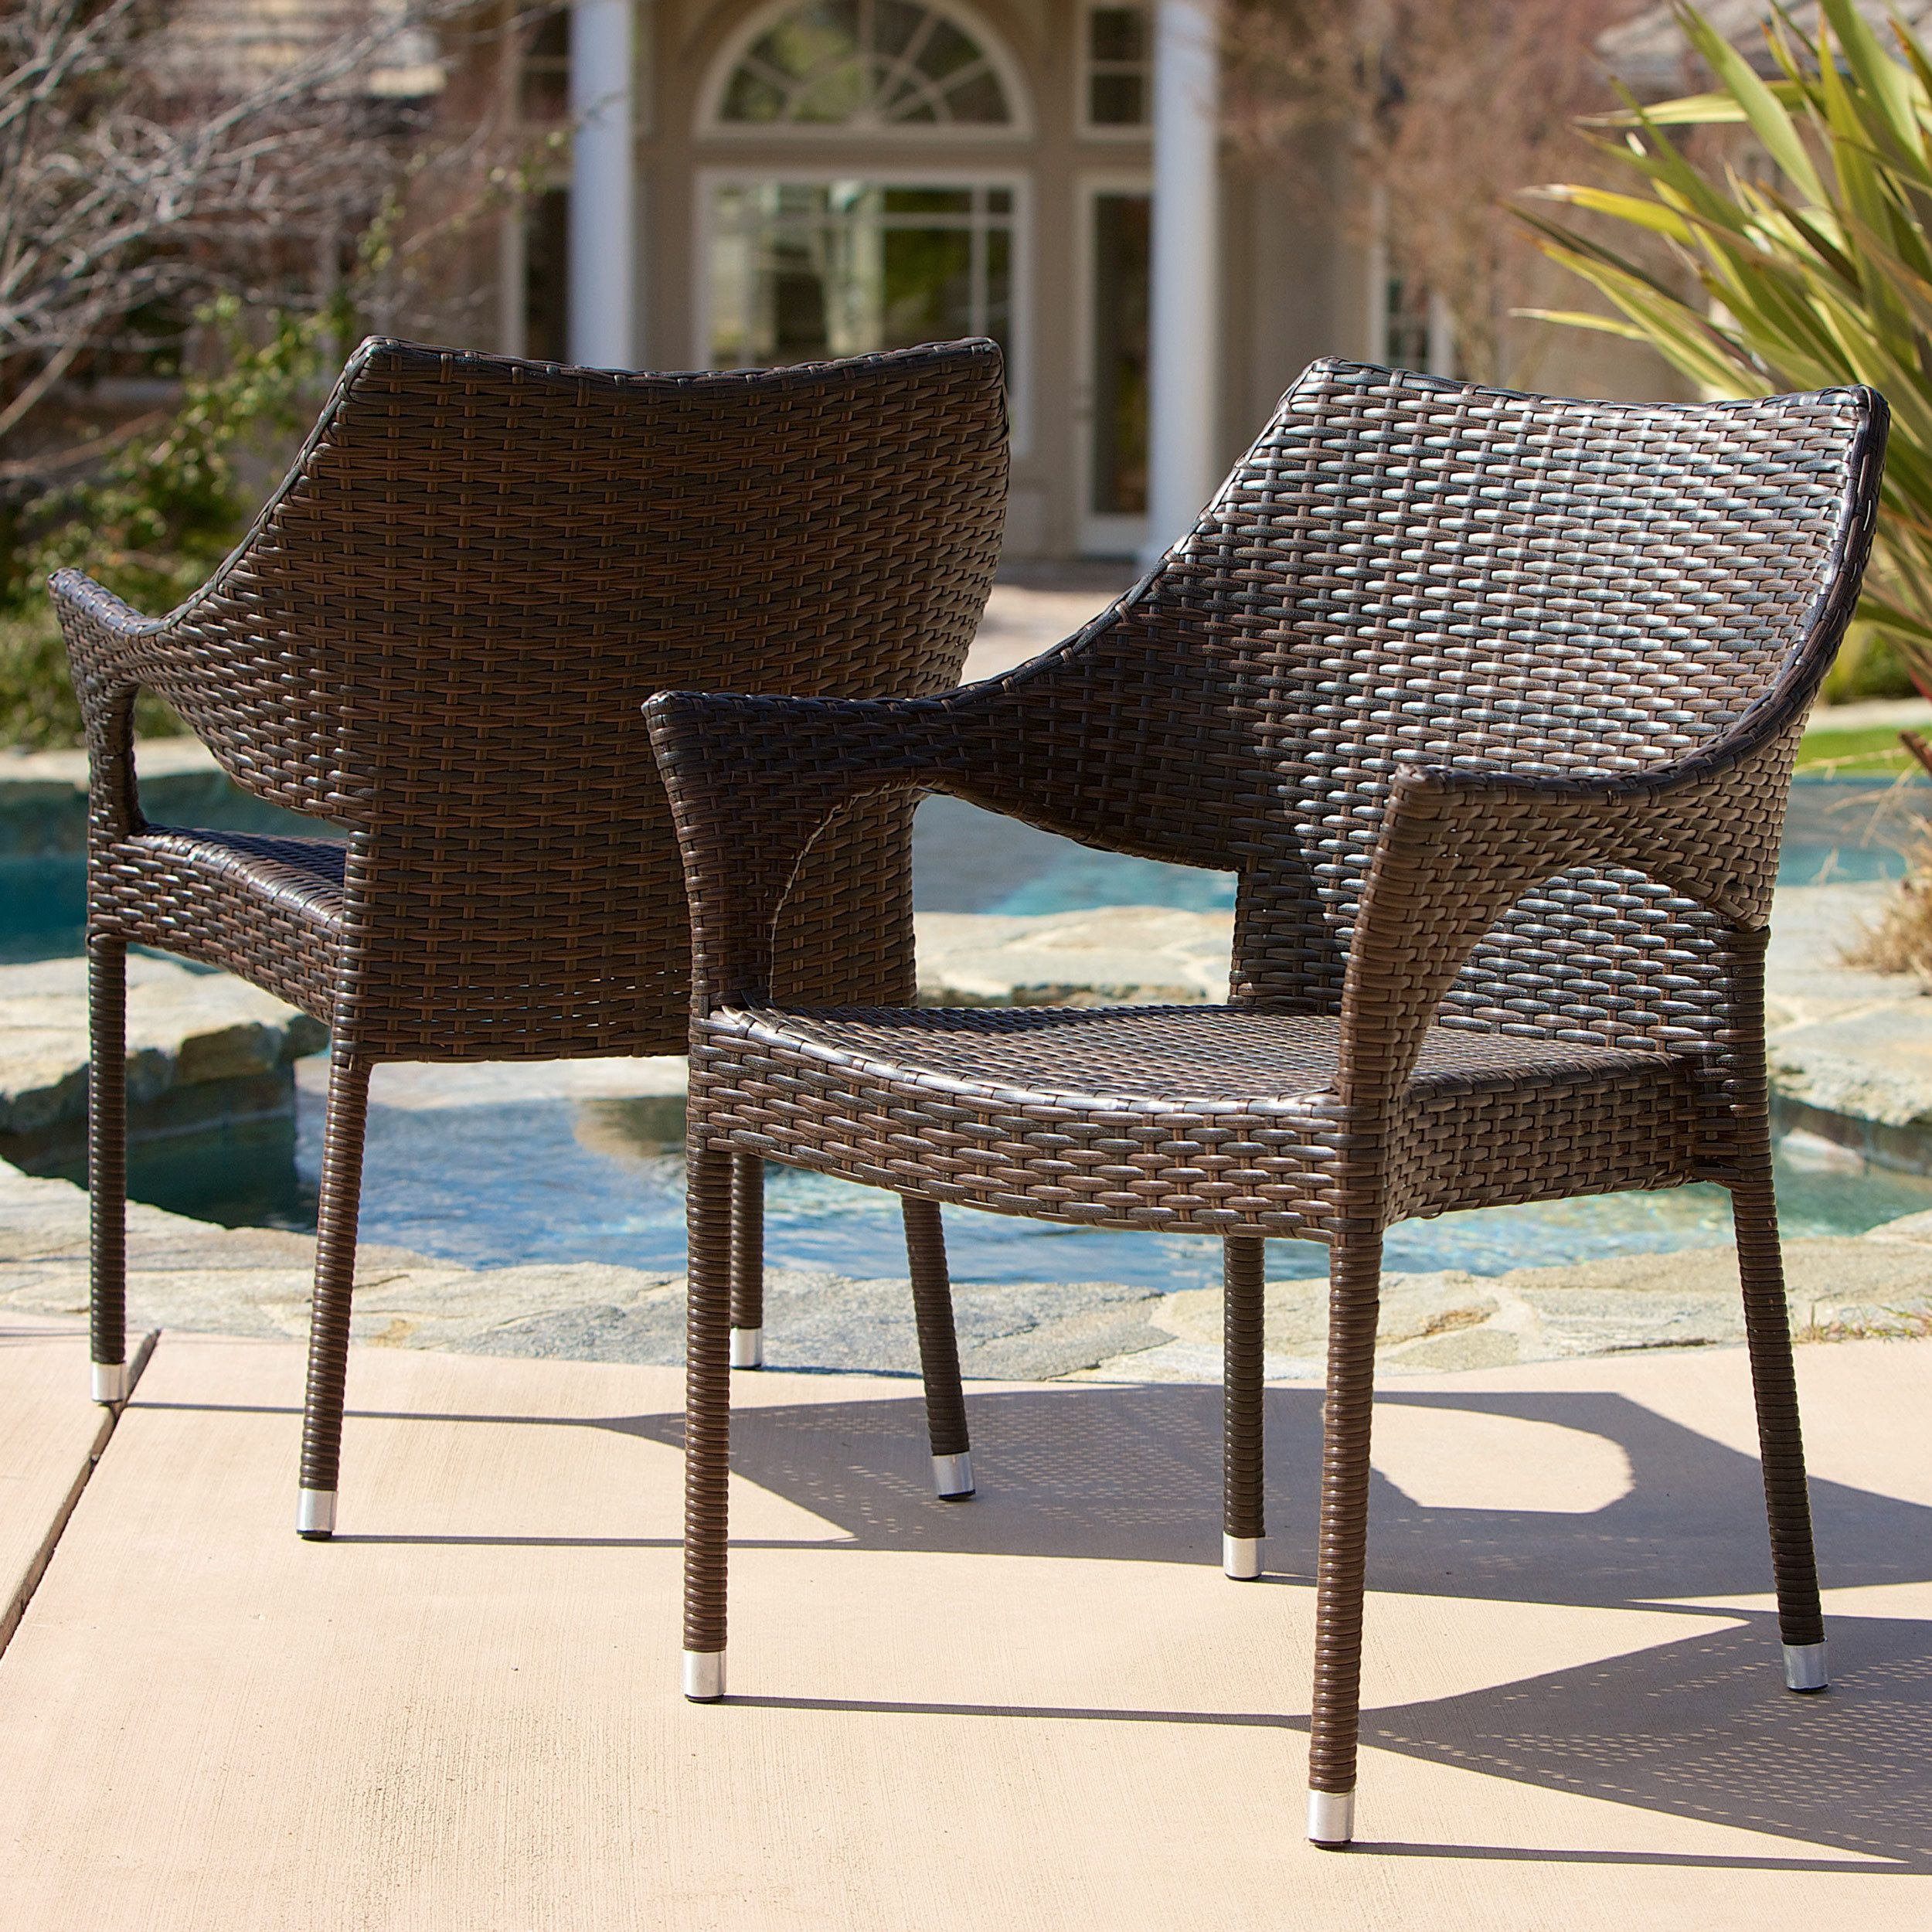 Wicker Furniture Decorating Ideas. Cliff Outdoor Wicker Chairs By  Christopher Knight Home Furniture Decorating Ideas